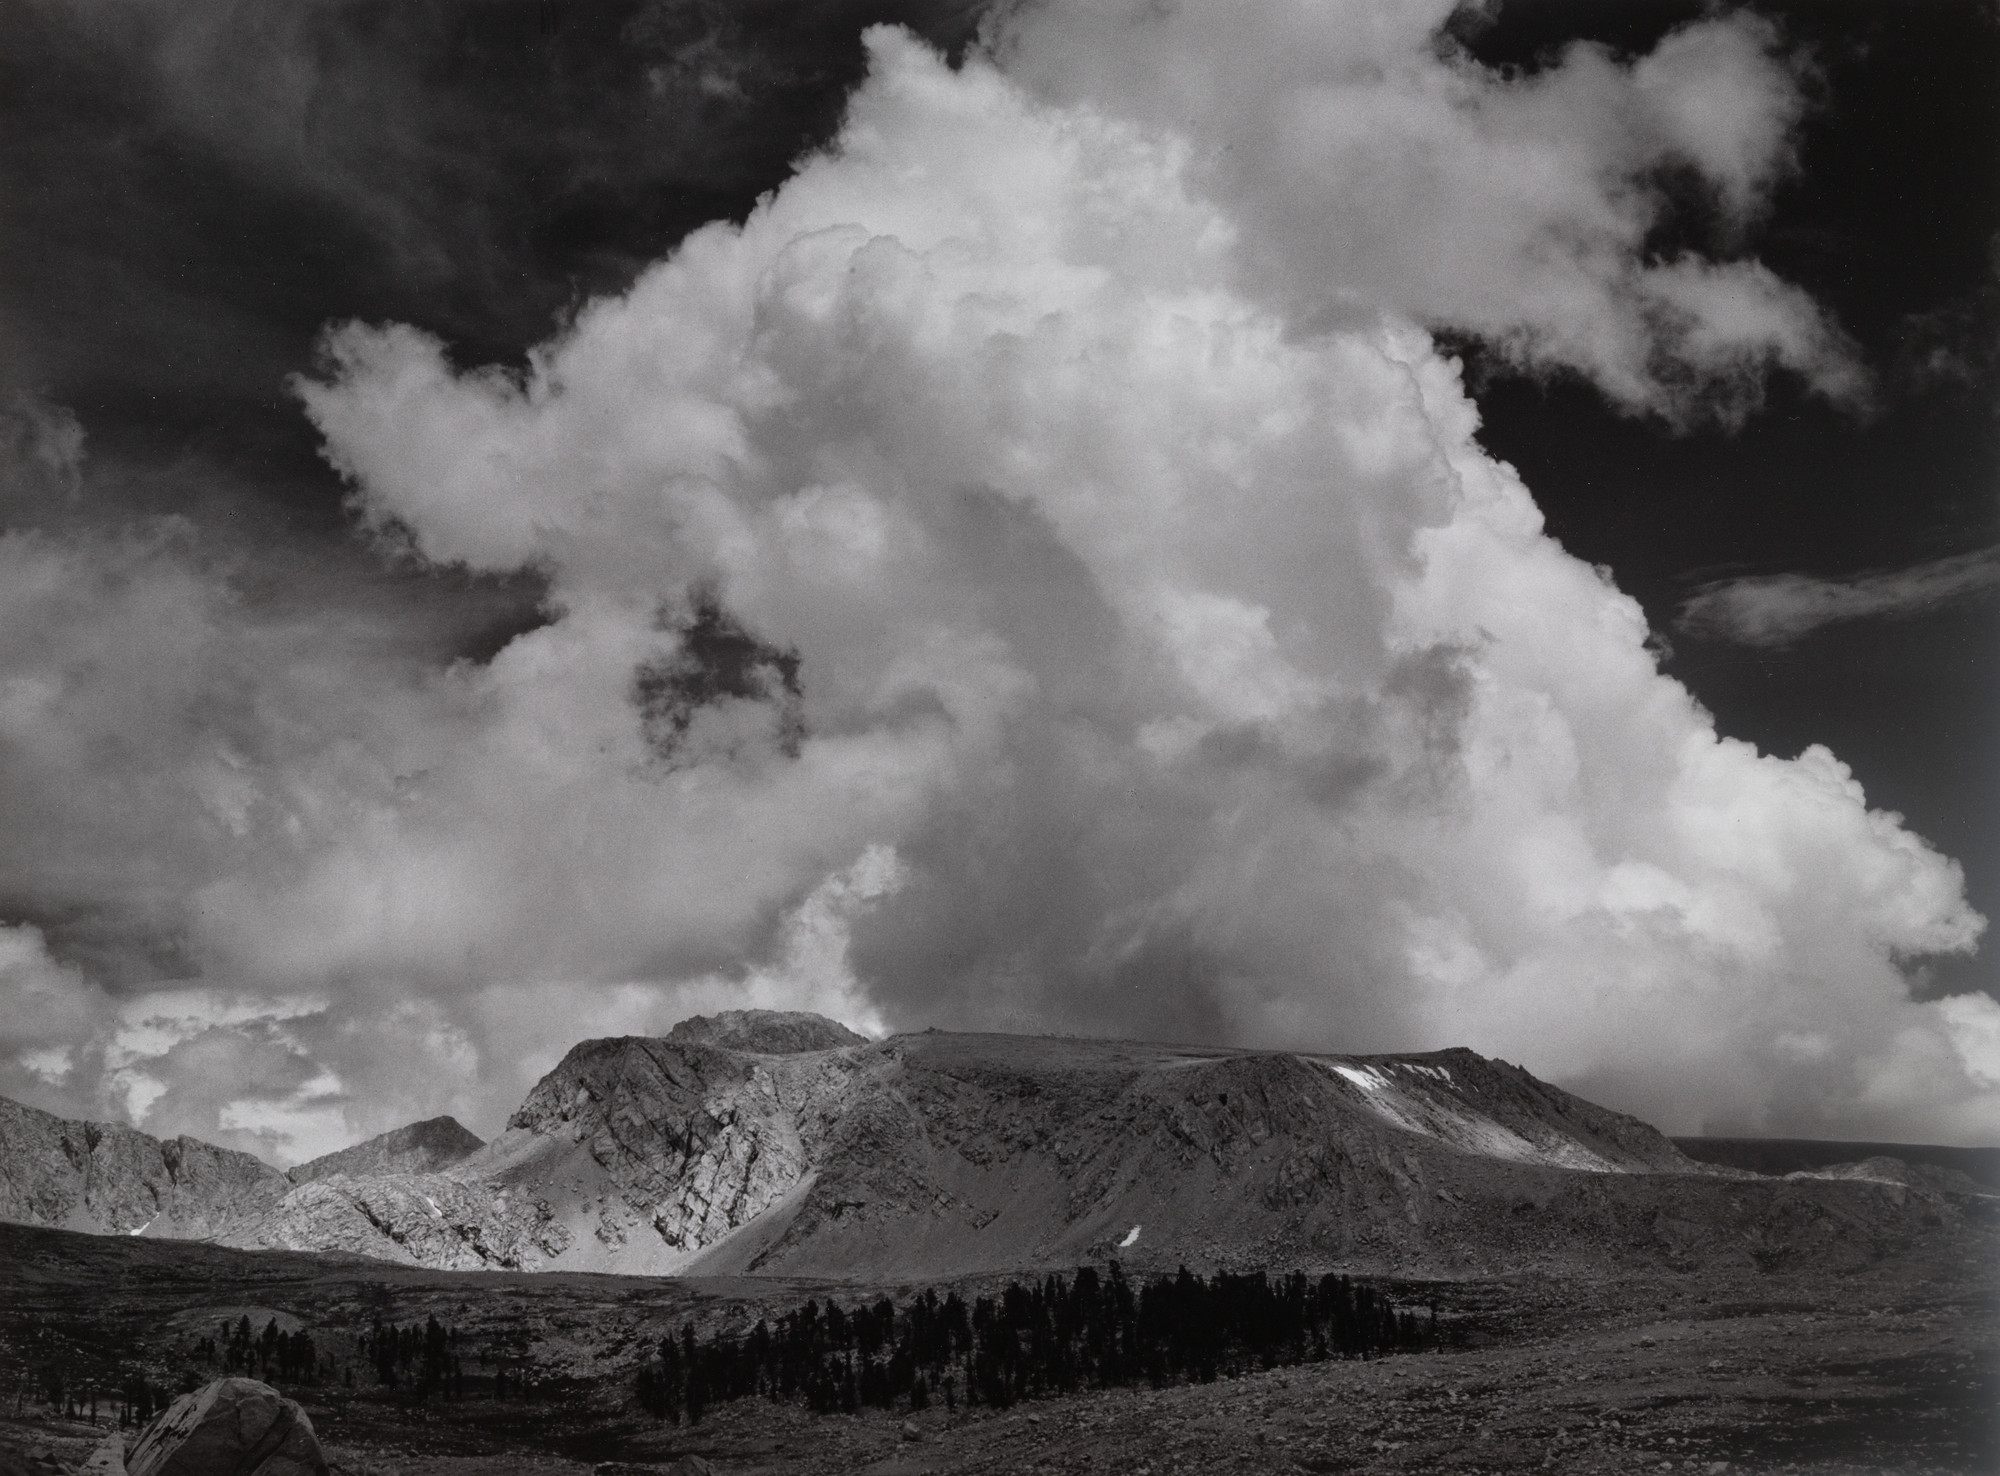 Ansel Adams. Afternoon Clouds near Kings-Kern Divide, Sequoia National Park, California. c. 1936